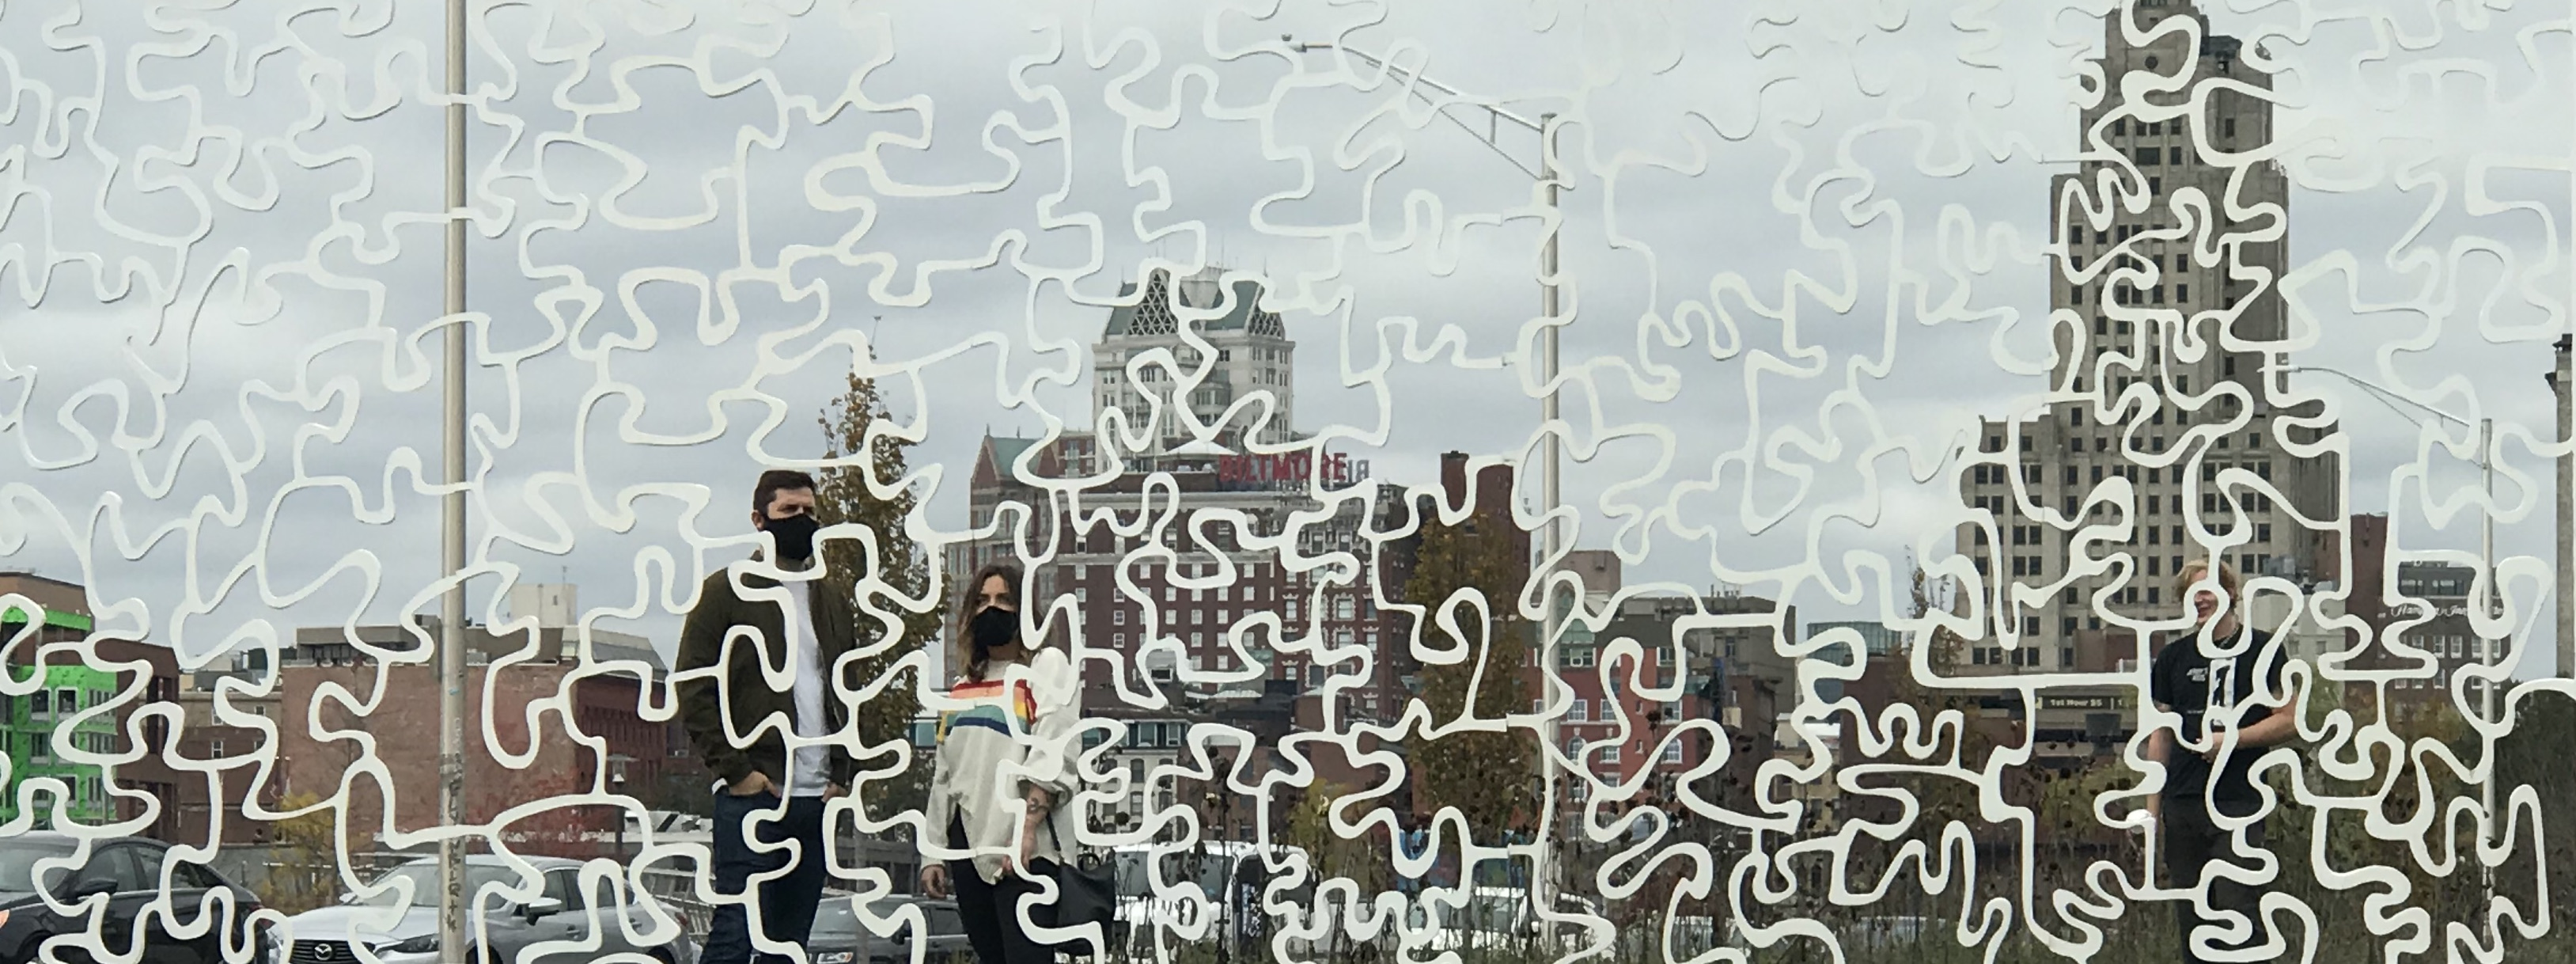 Jigsaw City